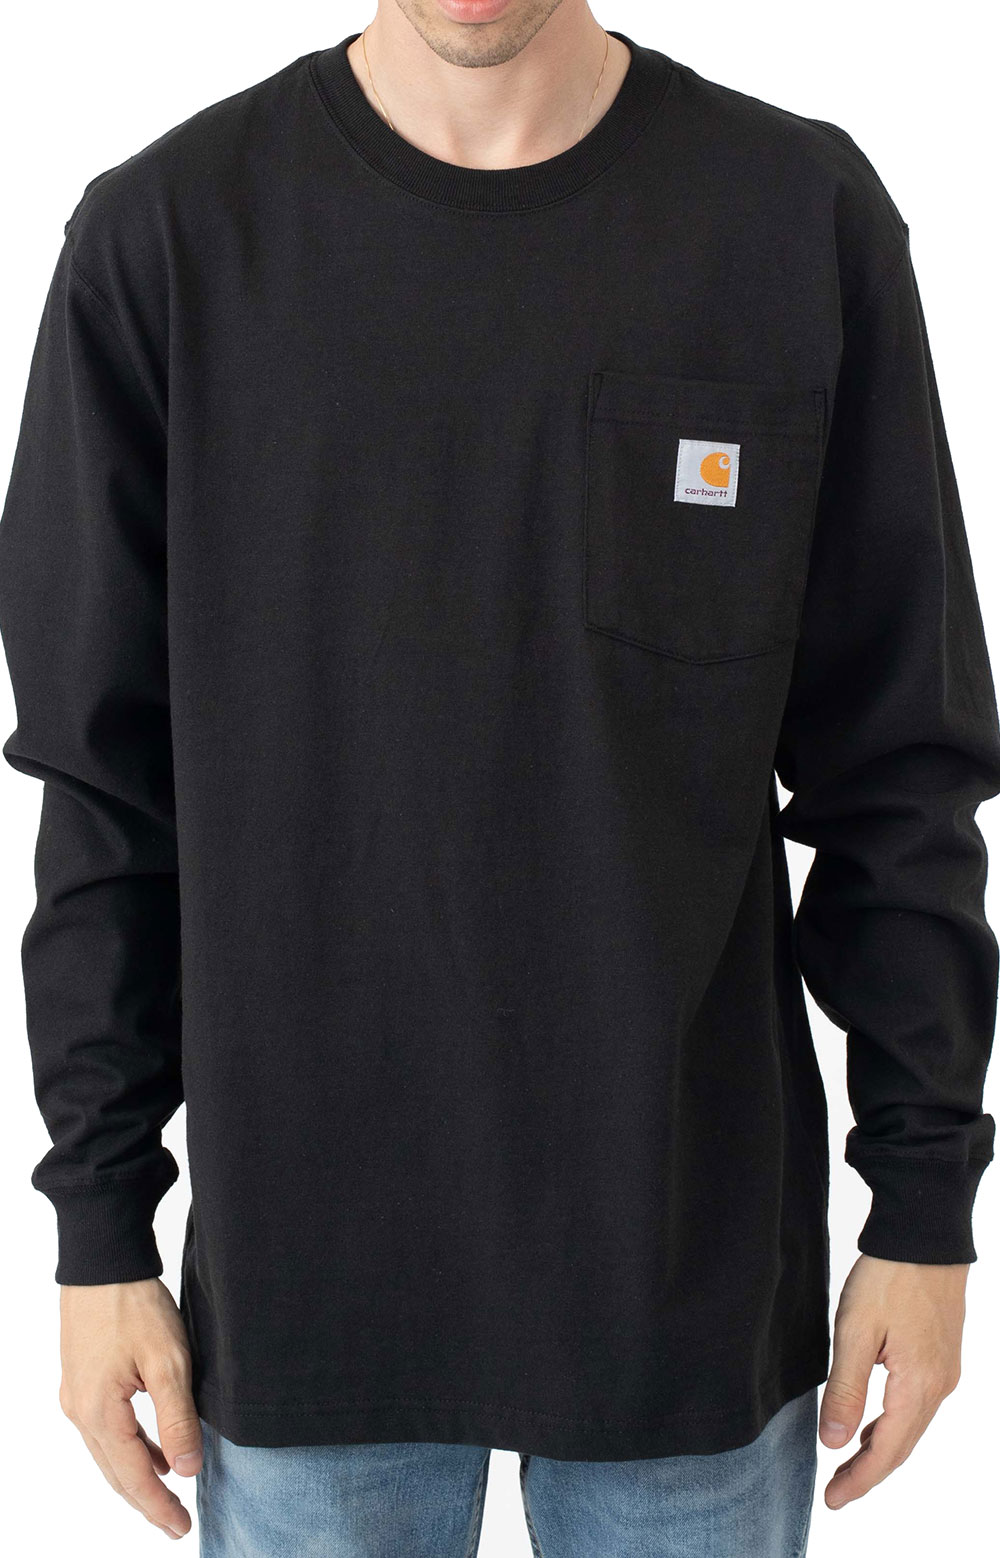 (104896) Loose Fit Heavyweight L/S Pocket Antler Graphic T-Shirt - Black  2